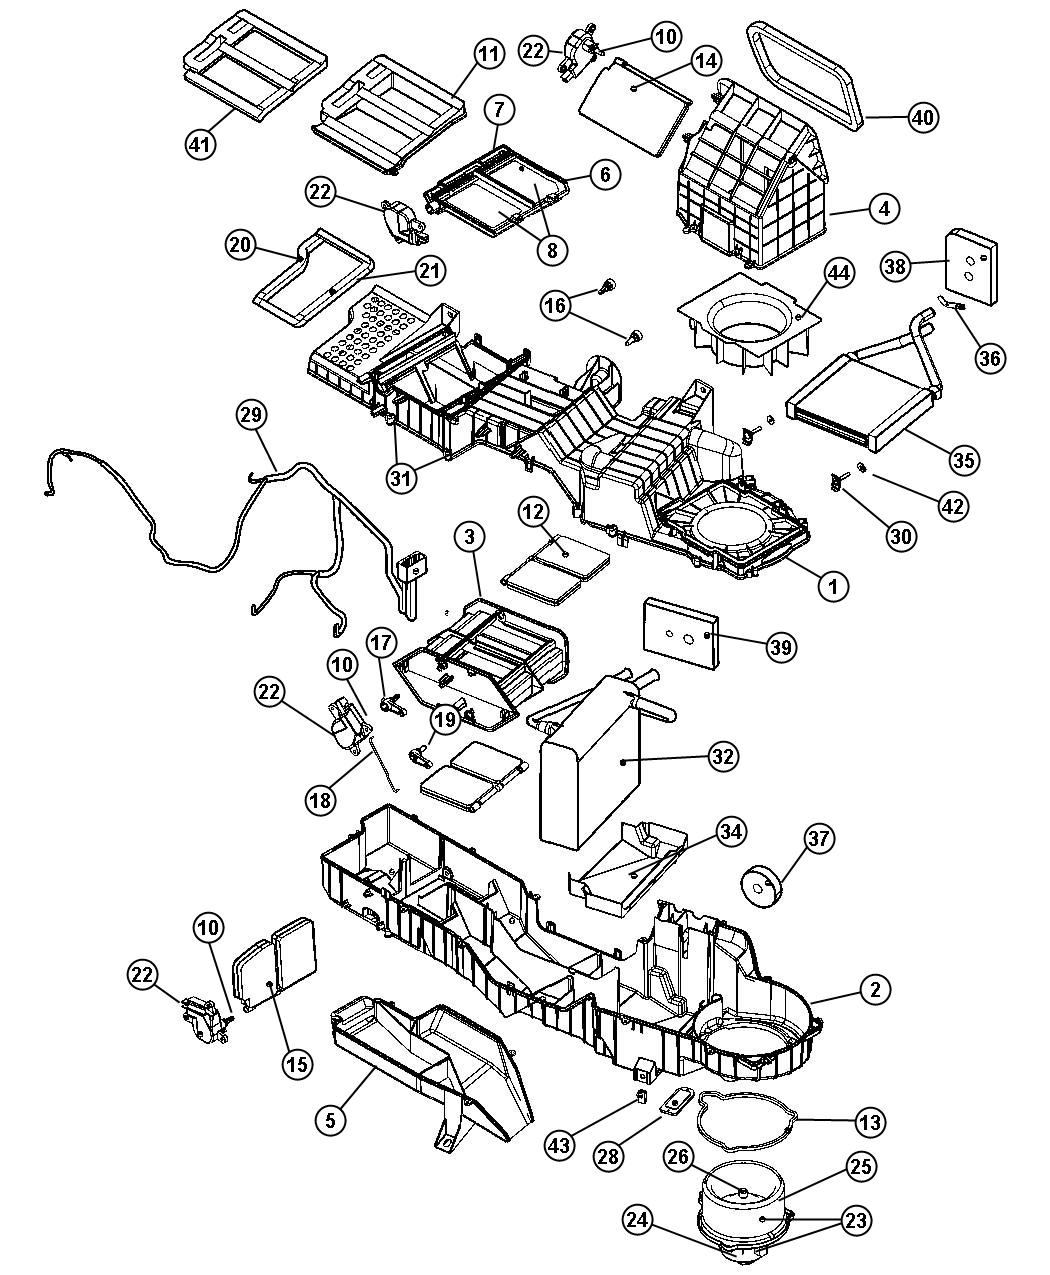 2000 Dodge Ram Heater Diagram on 2001 Dodge Intrepid Parts Diagram